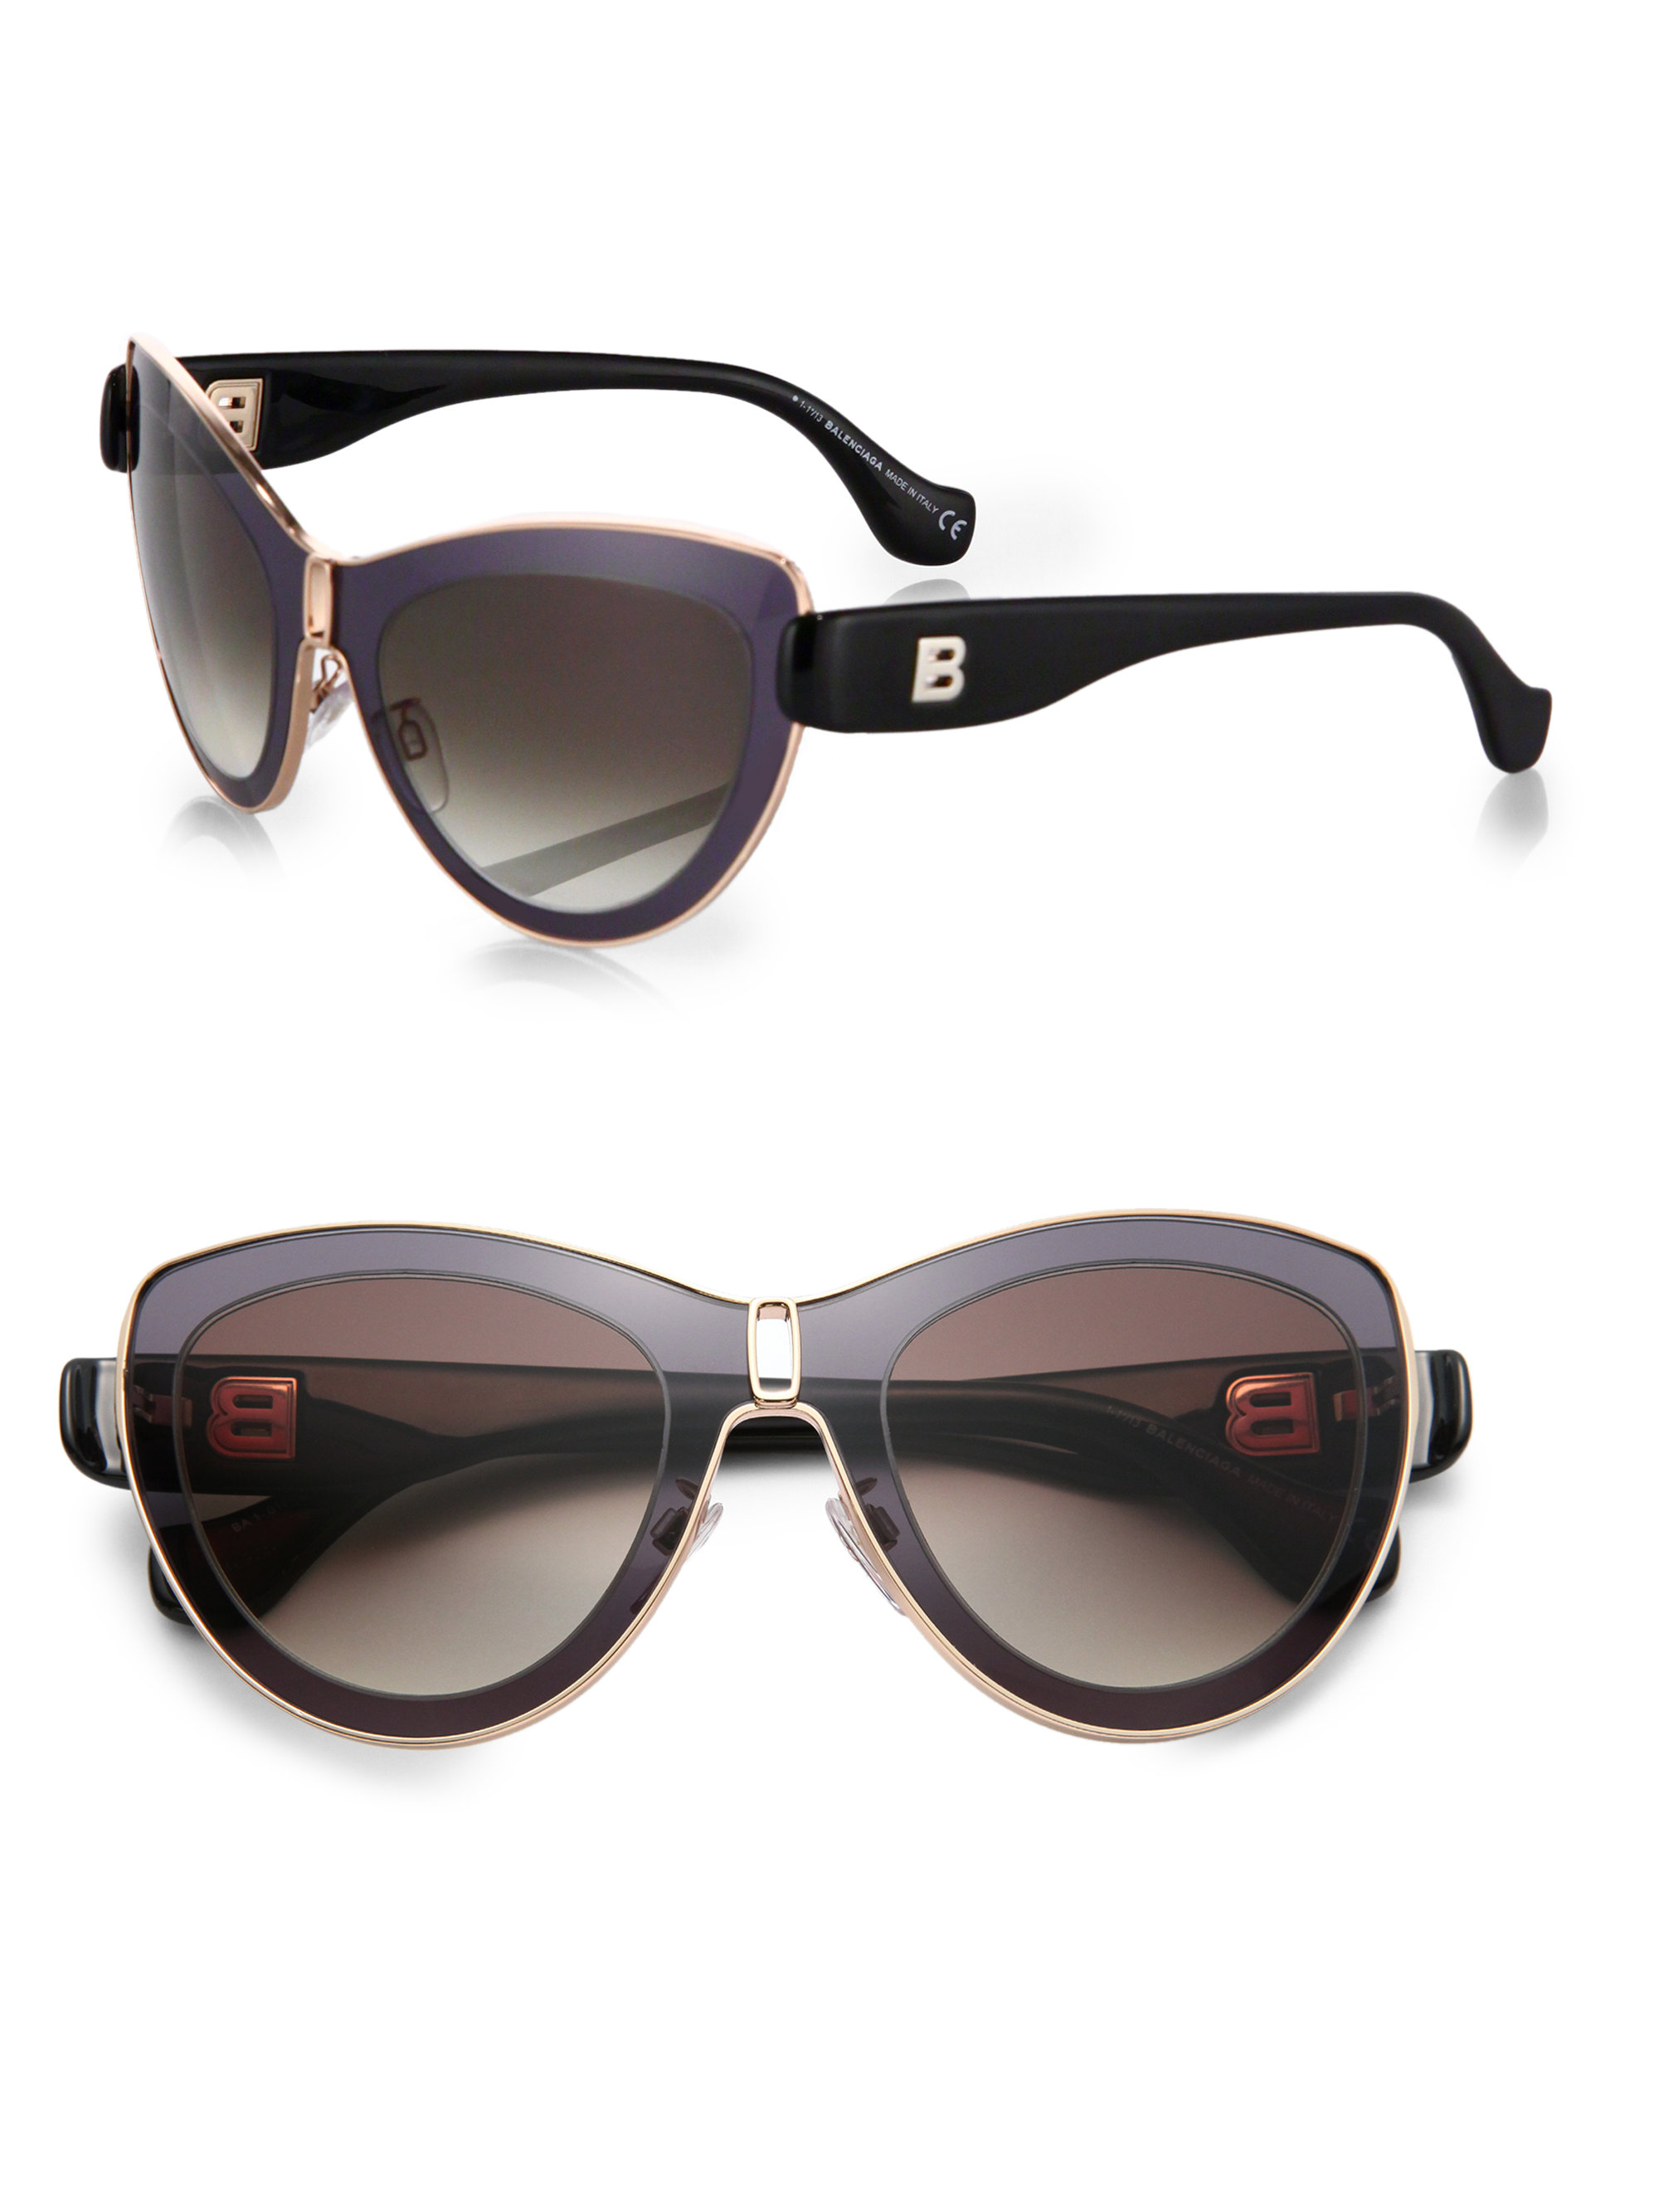 Fendi Women S Cat Eye Sunglasses